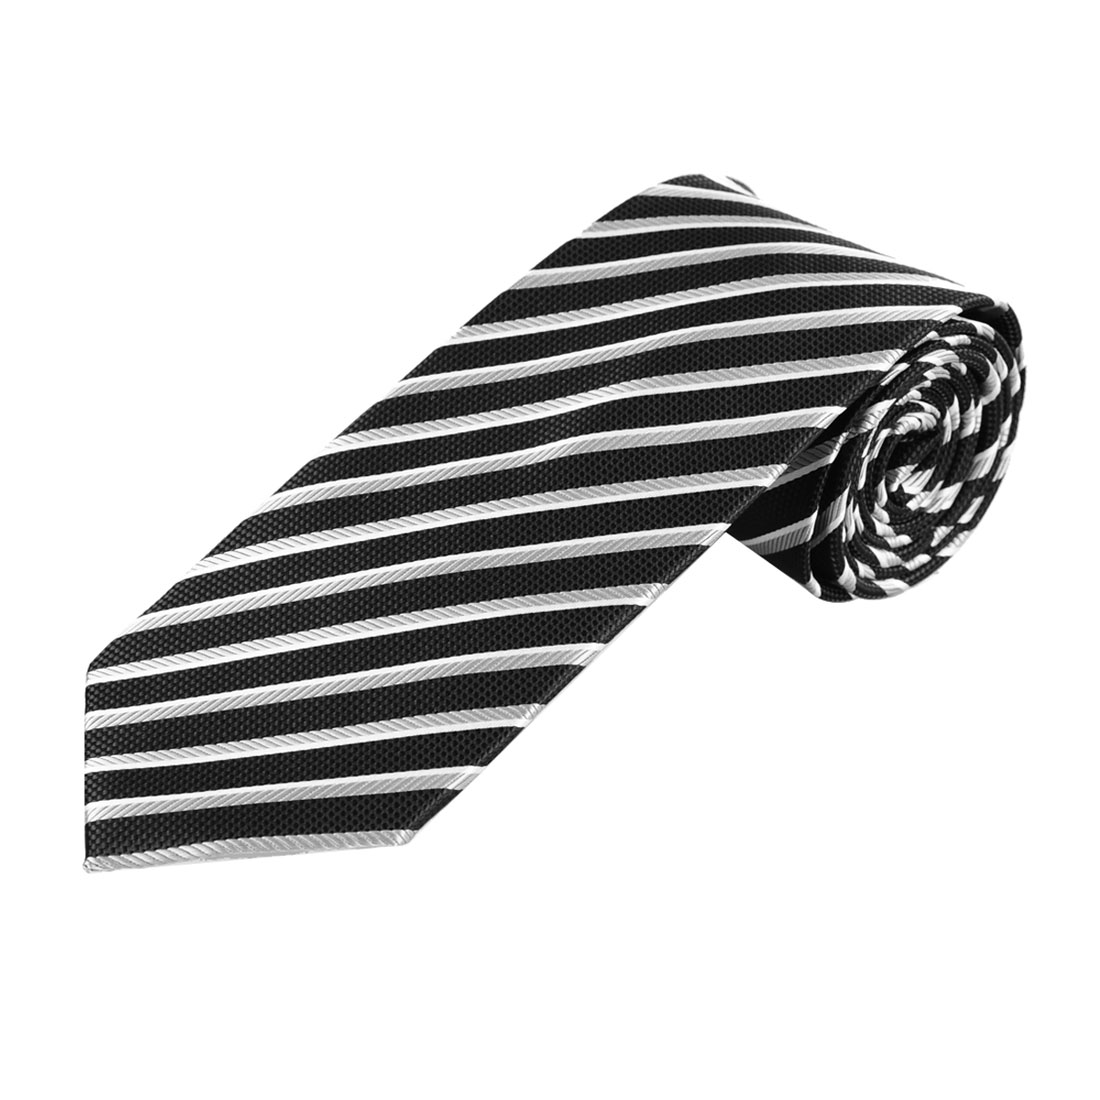 146cm Long Gray Black Diagonal Stripes Adjustable Neckwear Neck Tie for Man